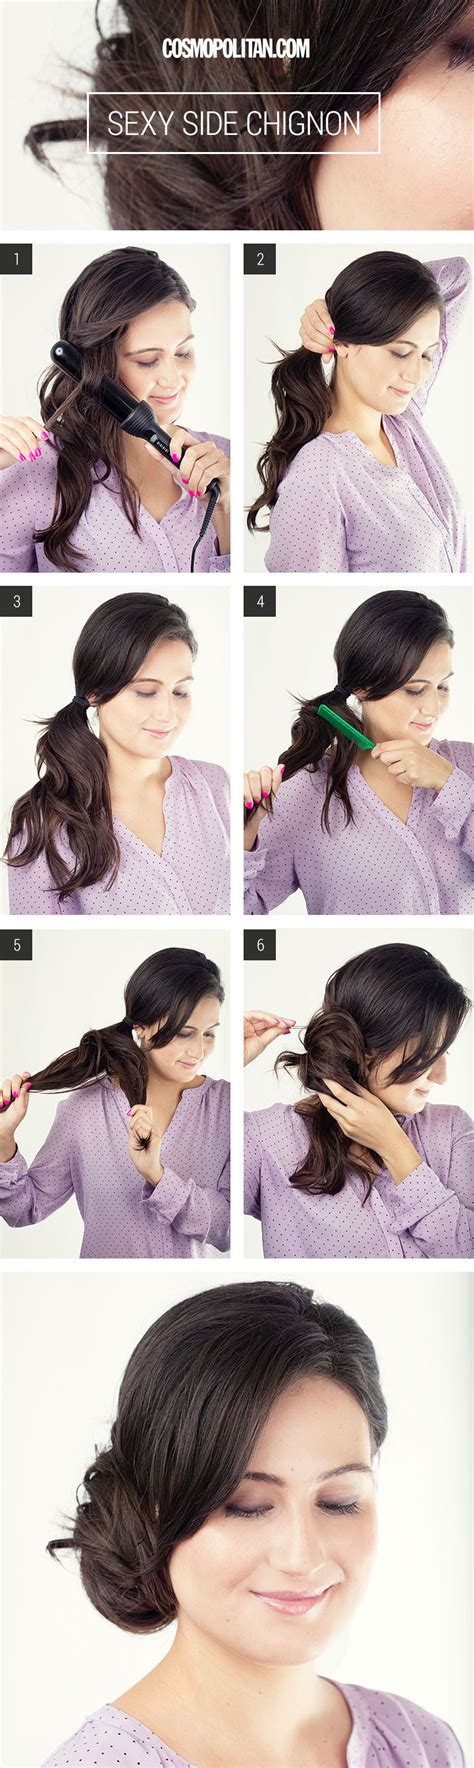 easy hairstyles to do at home step by step for school dailymotion hair tutorials 15 simple easy hairstyles you should not miss styles weekly